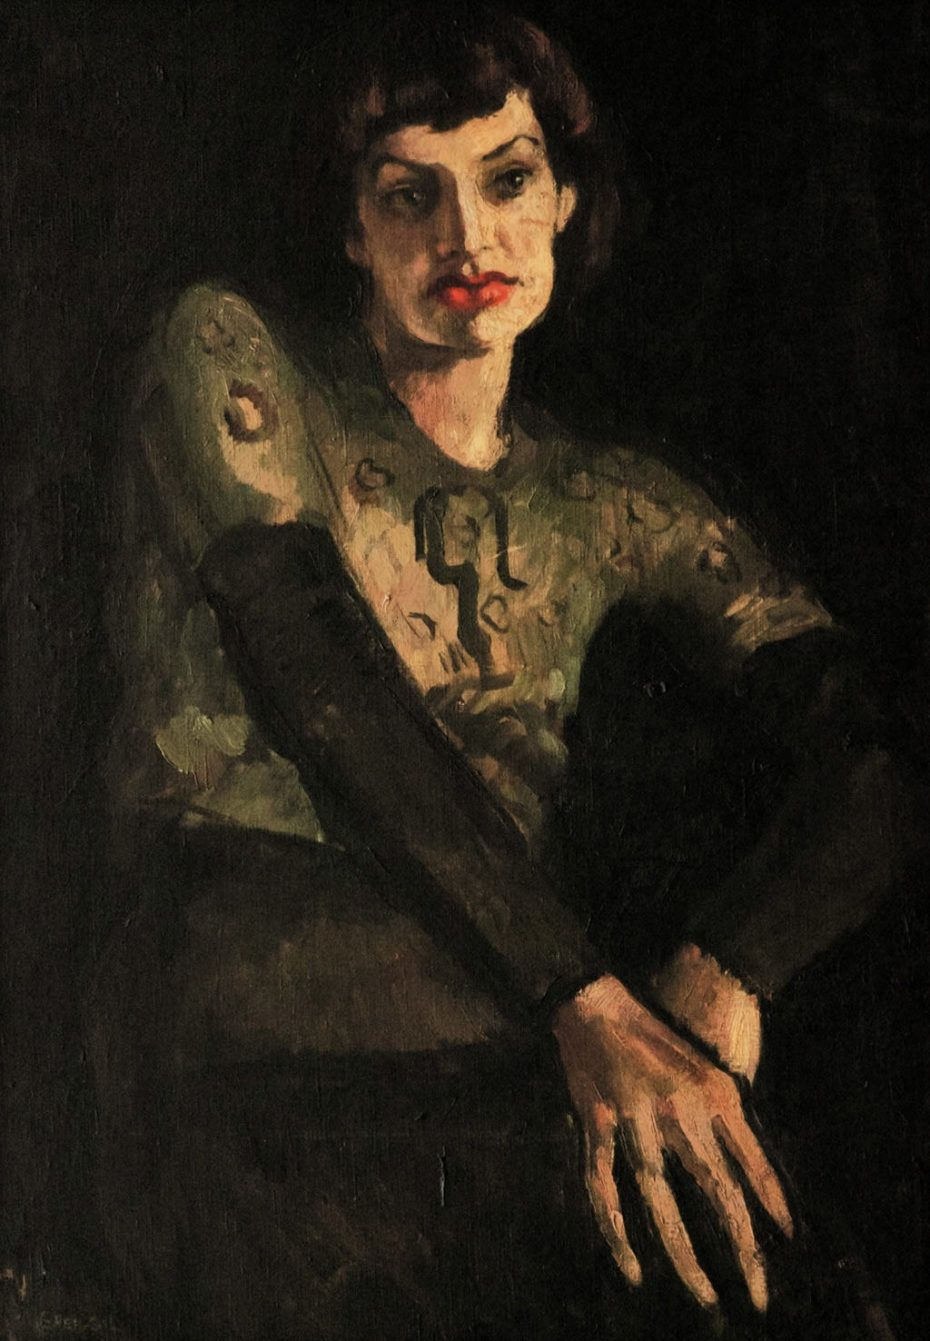 Portrait of Marie Louise Chassany by Amrita Sher-Gil